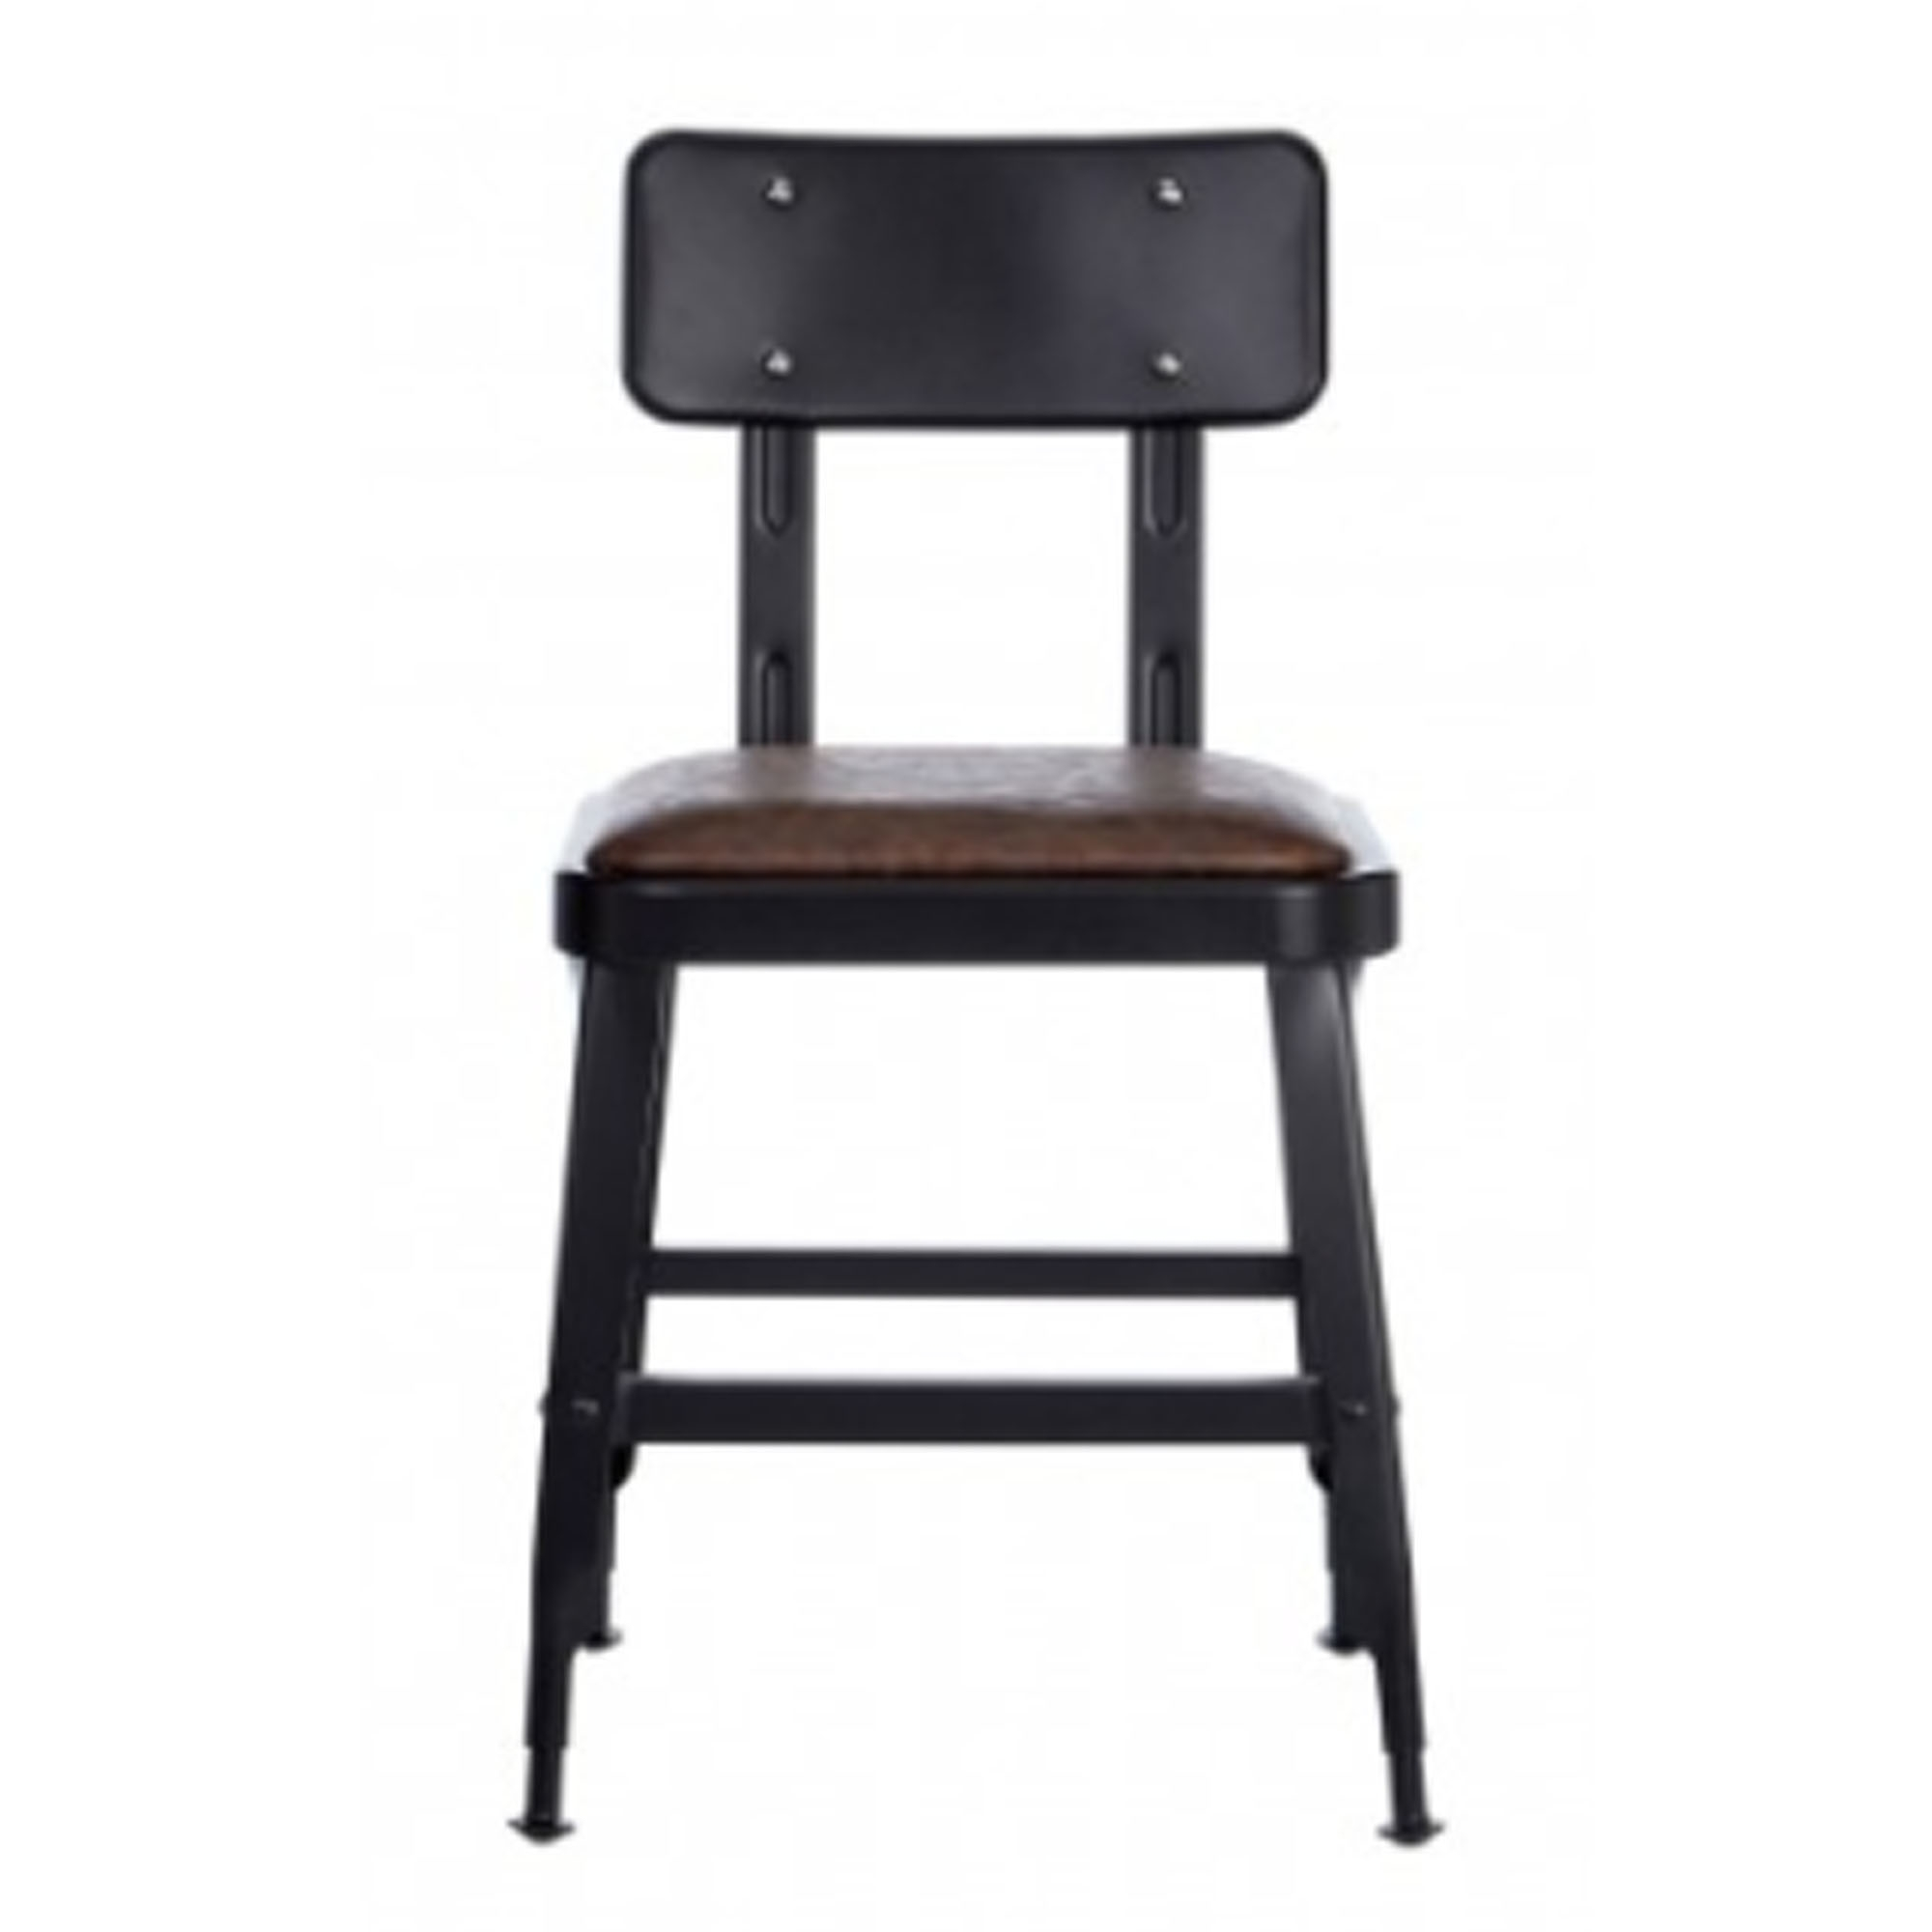 Phenomenal Dalston Vintage Chair Caraccident5 Cool Chair Designs And Ideas Caraccident5Info